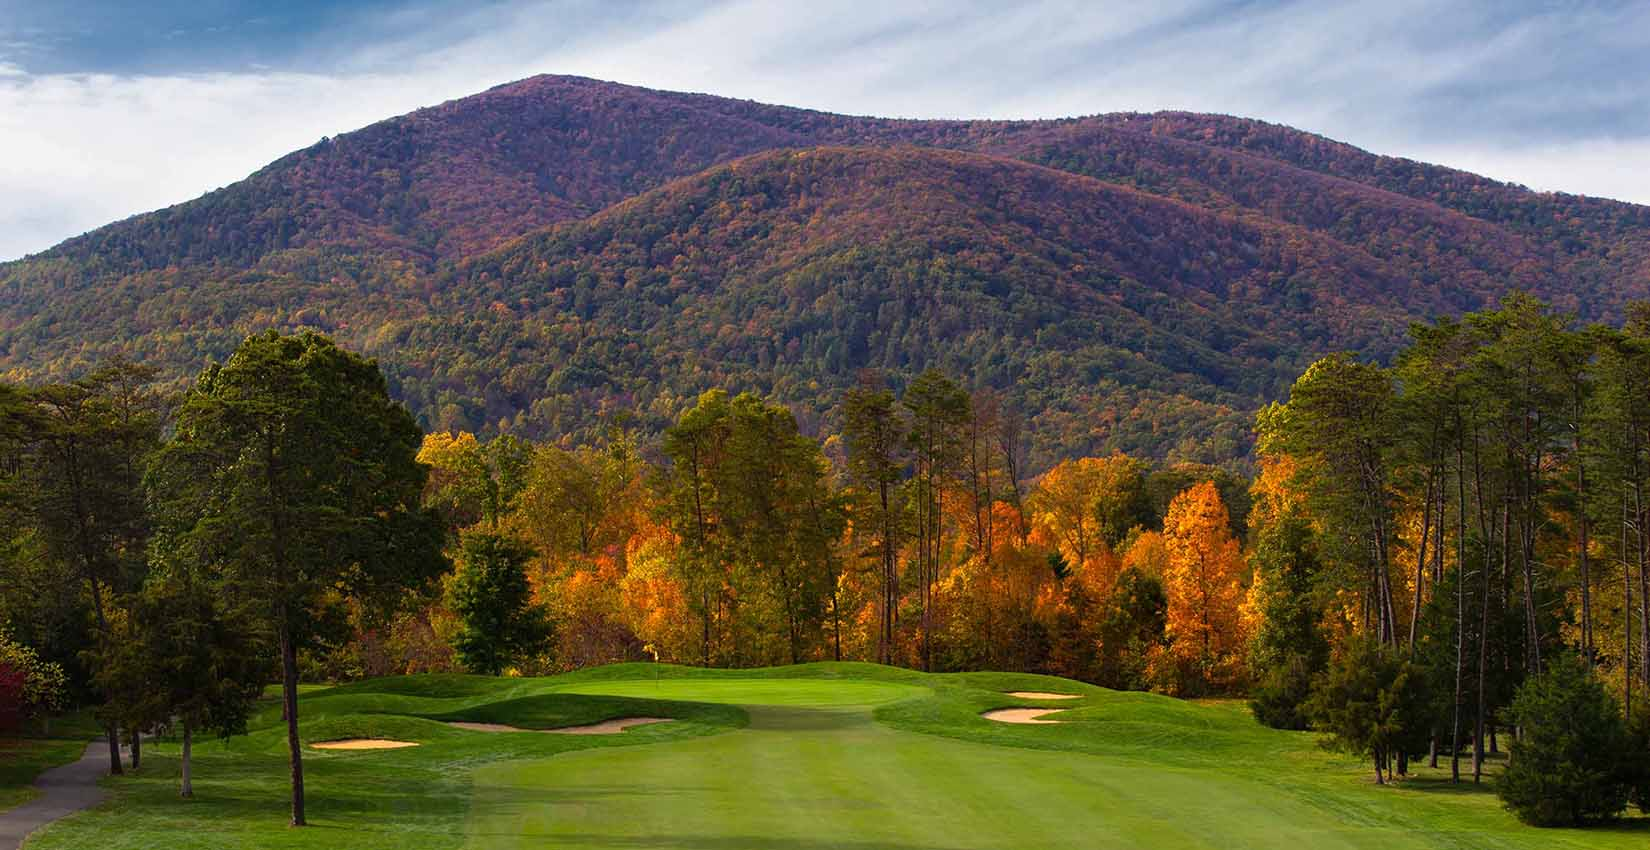 Golf Course on a fall day